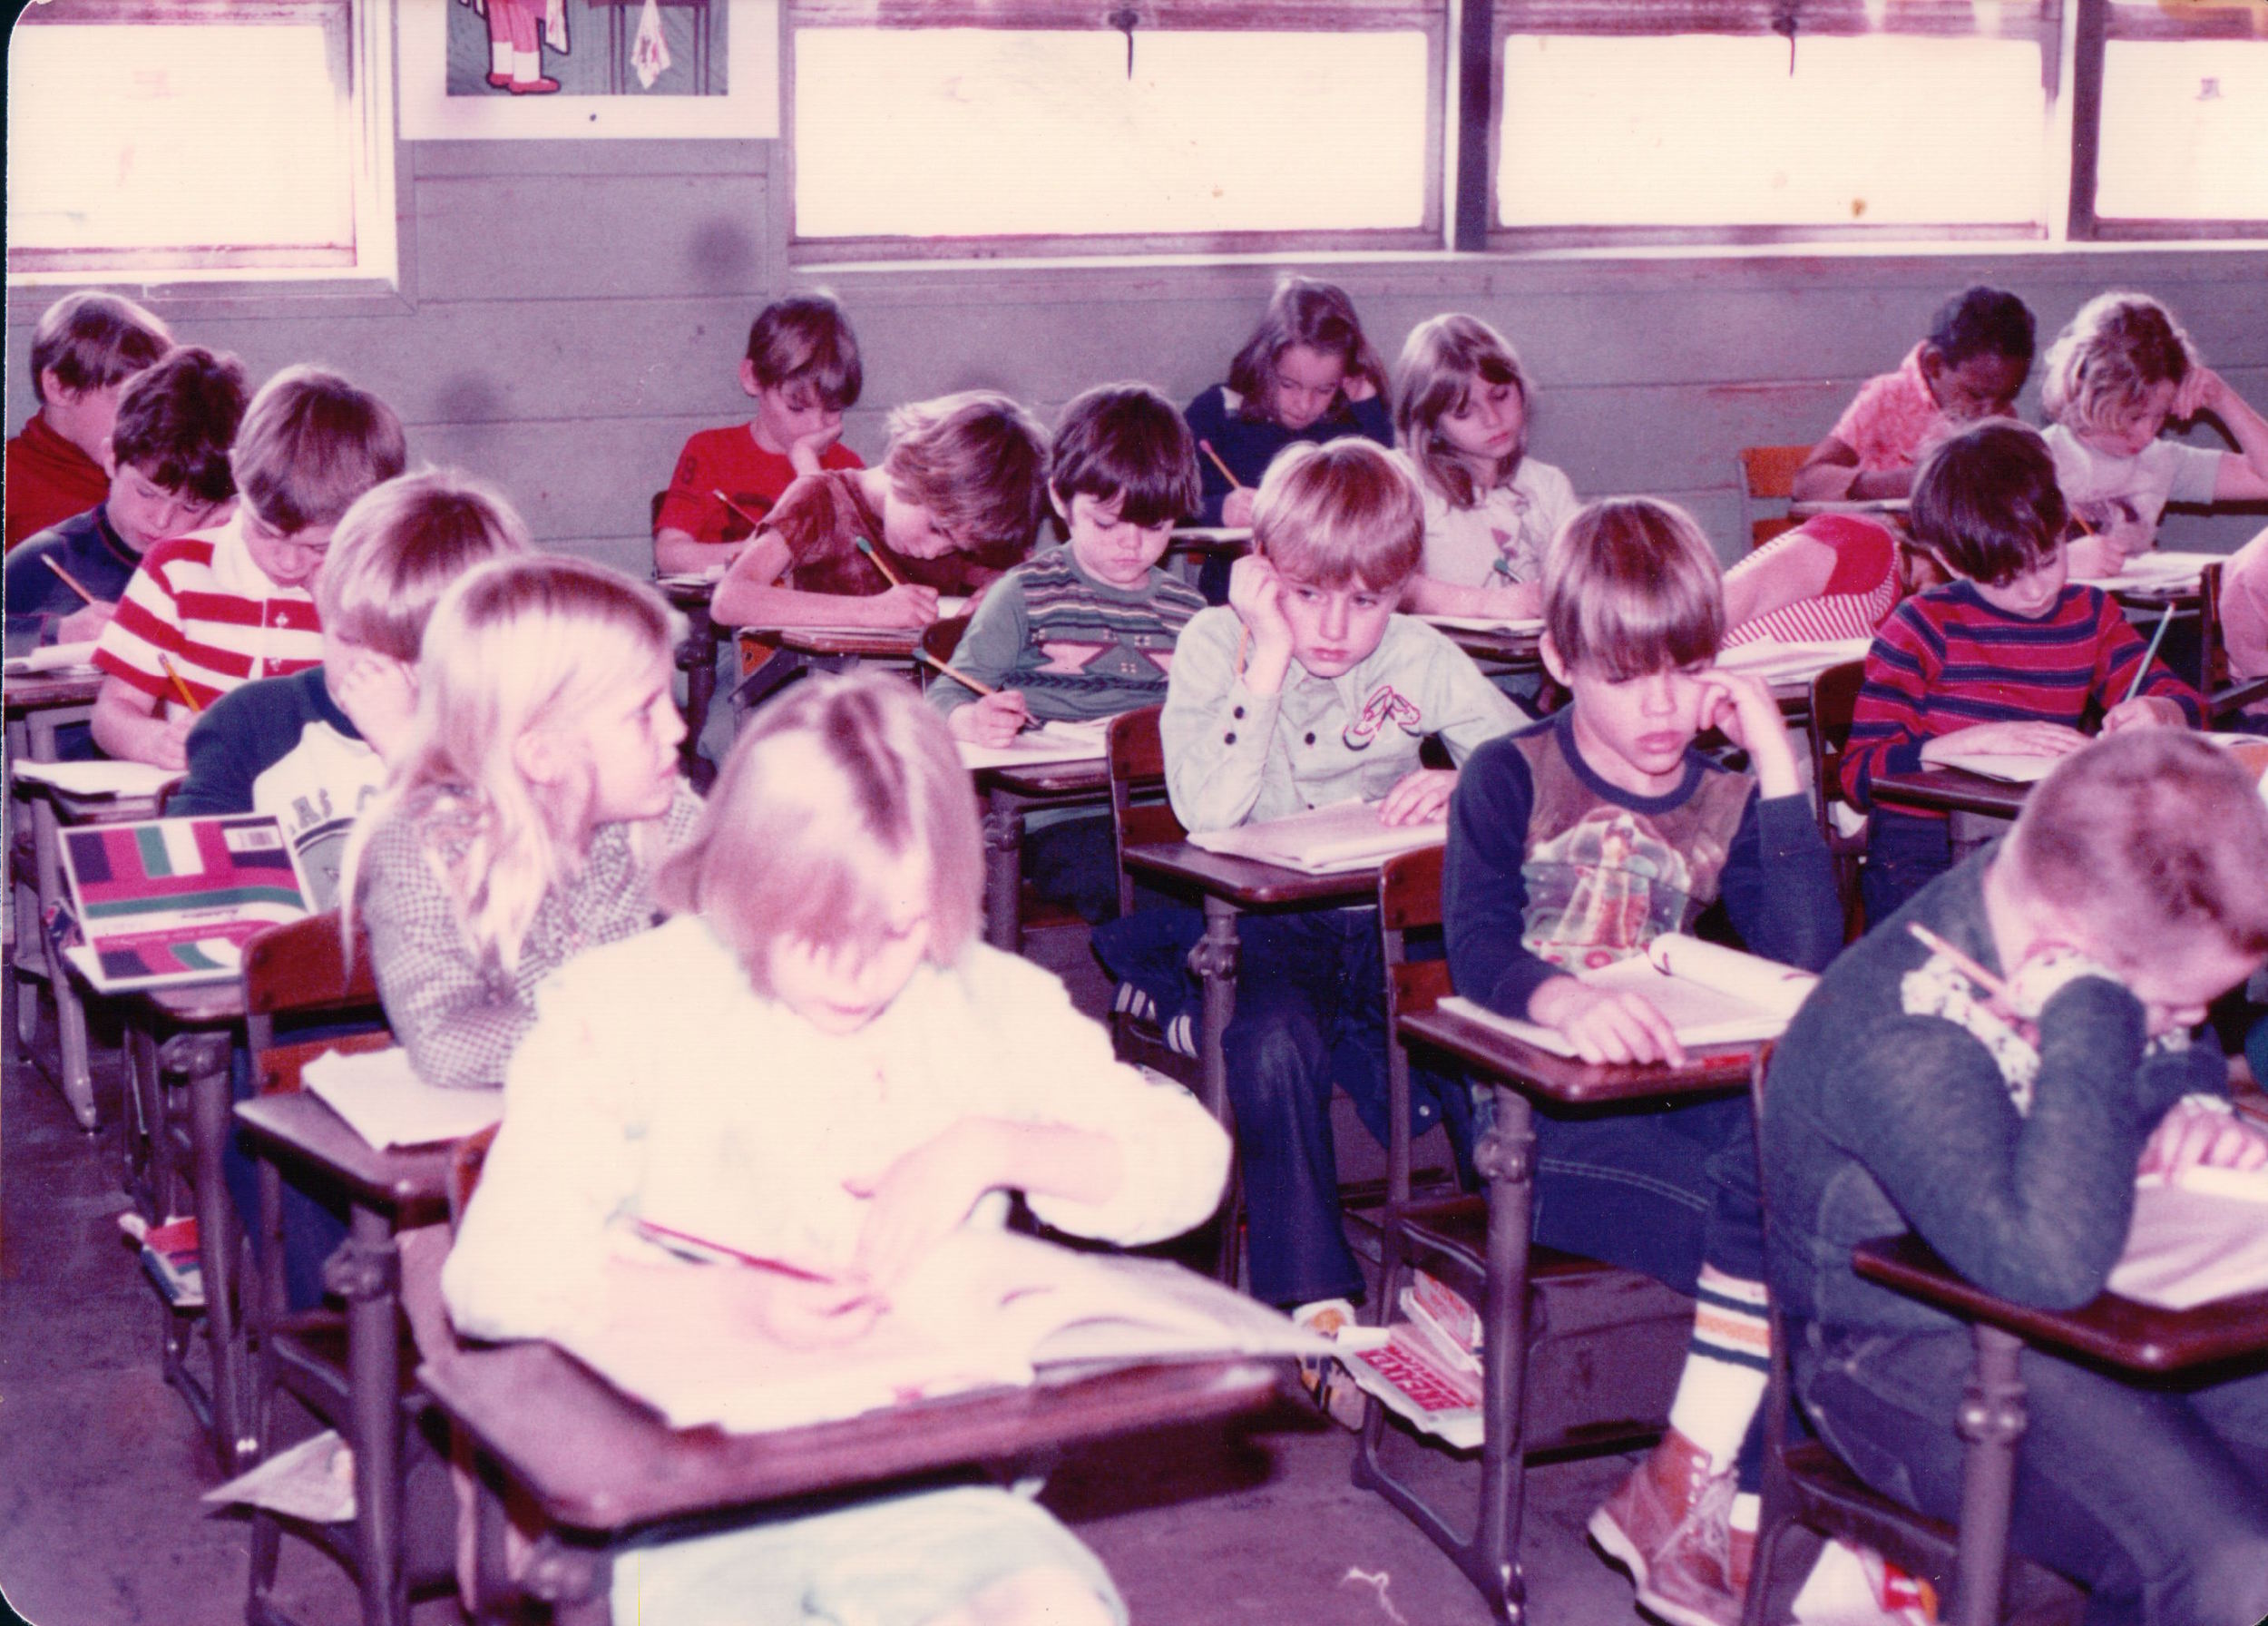 Mrs. Slaughter's second grade class, 1977-78. I am the blonde on the left, looking at the boy to the right. Mrs. Slaughter did not like me at all. My mom says I had stomach trouble the entire year. I'll take her word for it.